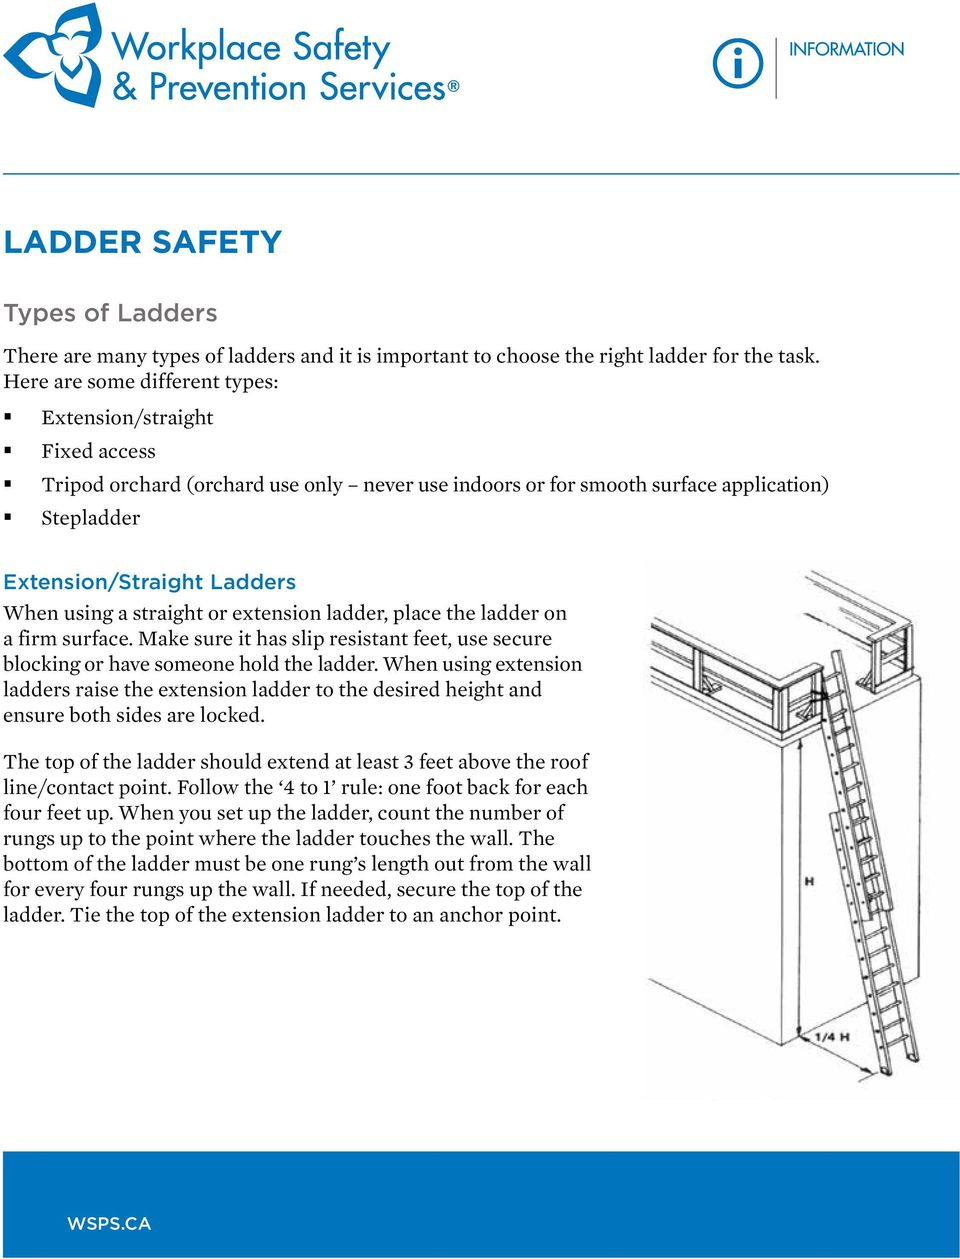 straight or extension ladder, place the ladder on a firm surface. Make sure it has slip resistant feet, use secure blocking or have someone hold the ladder.